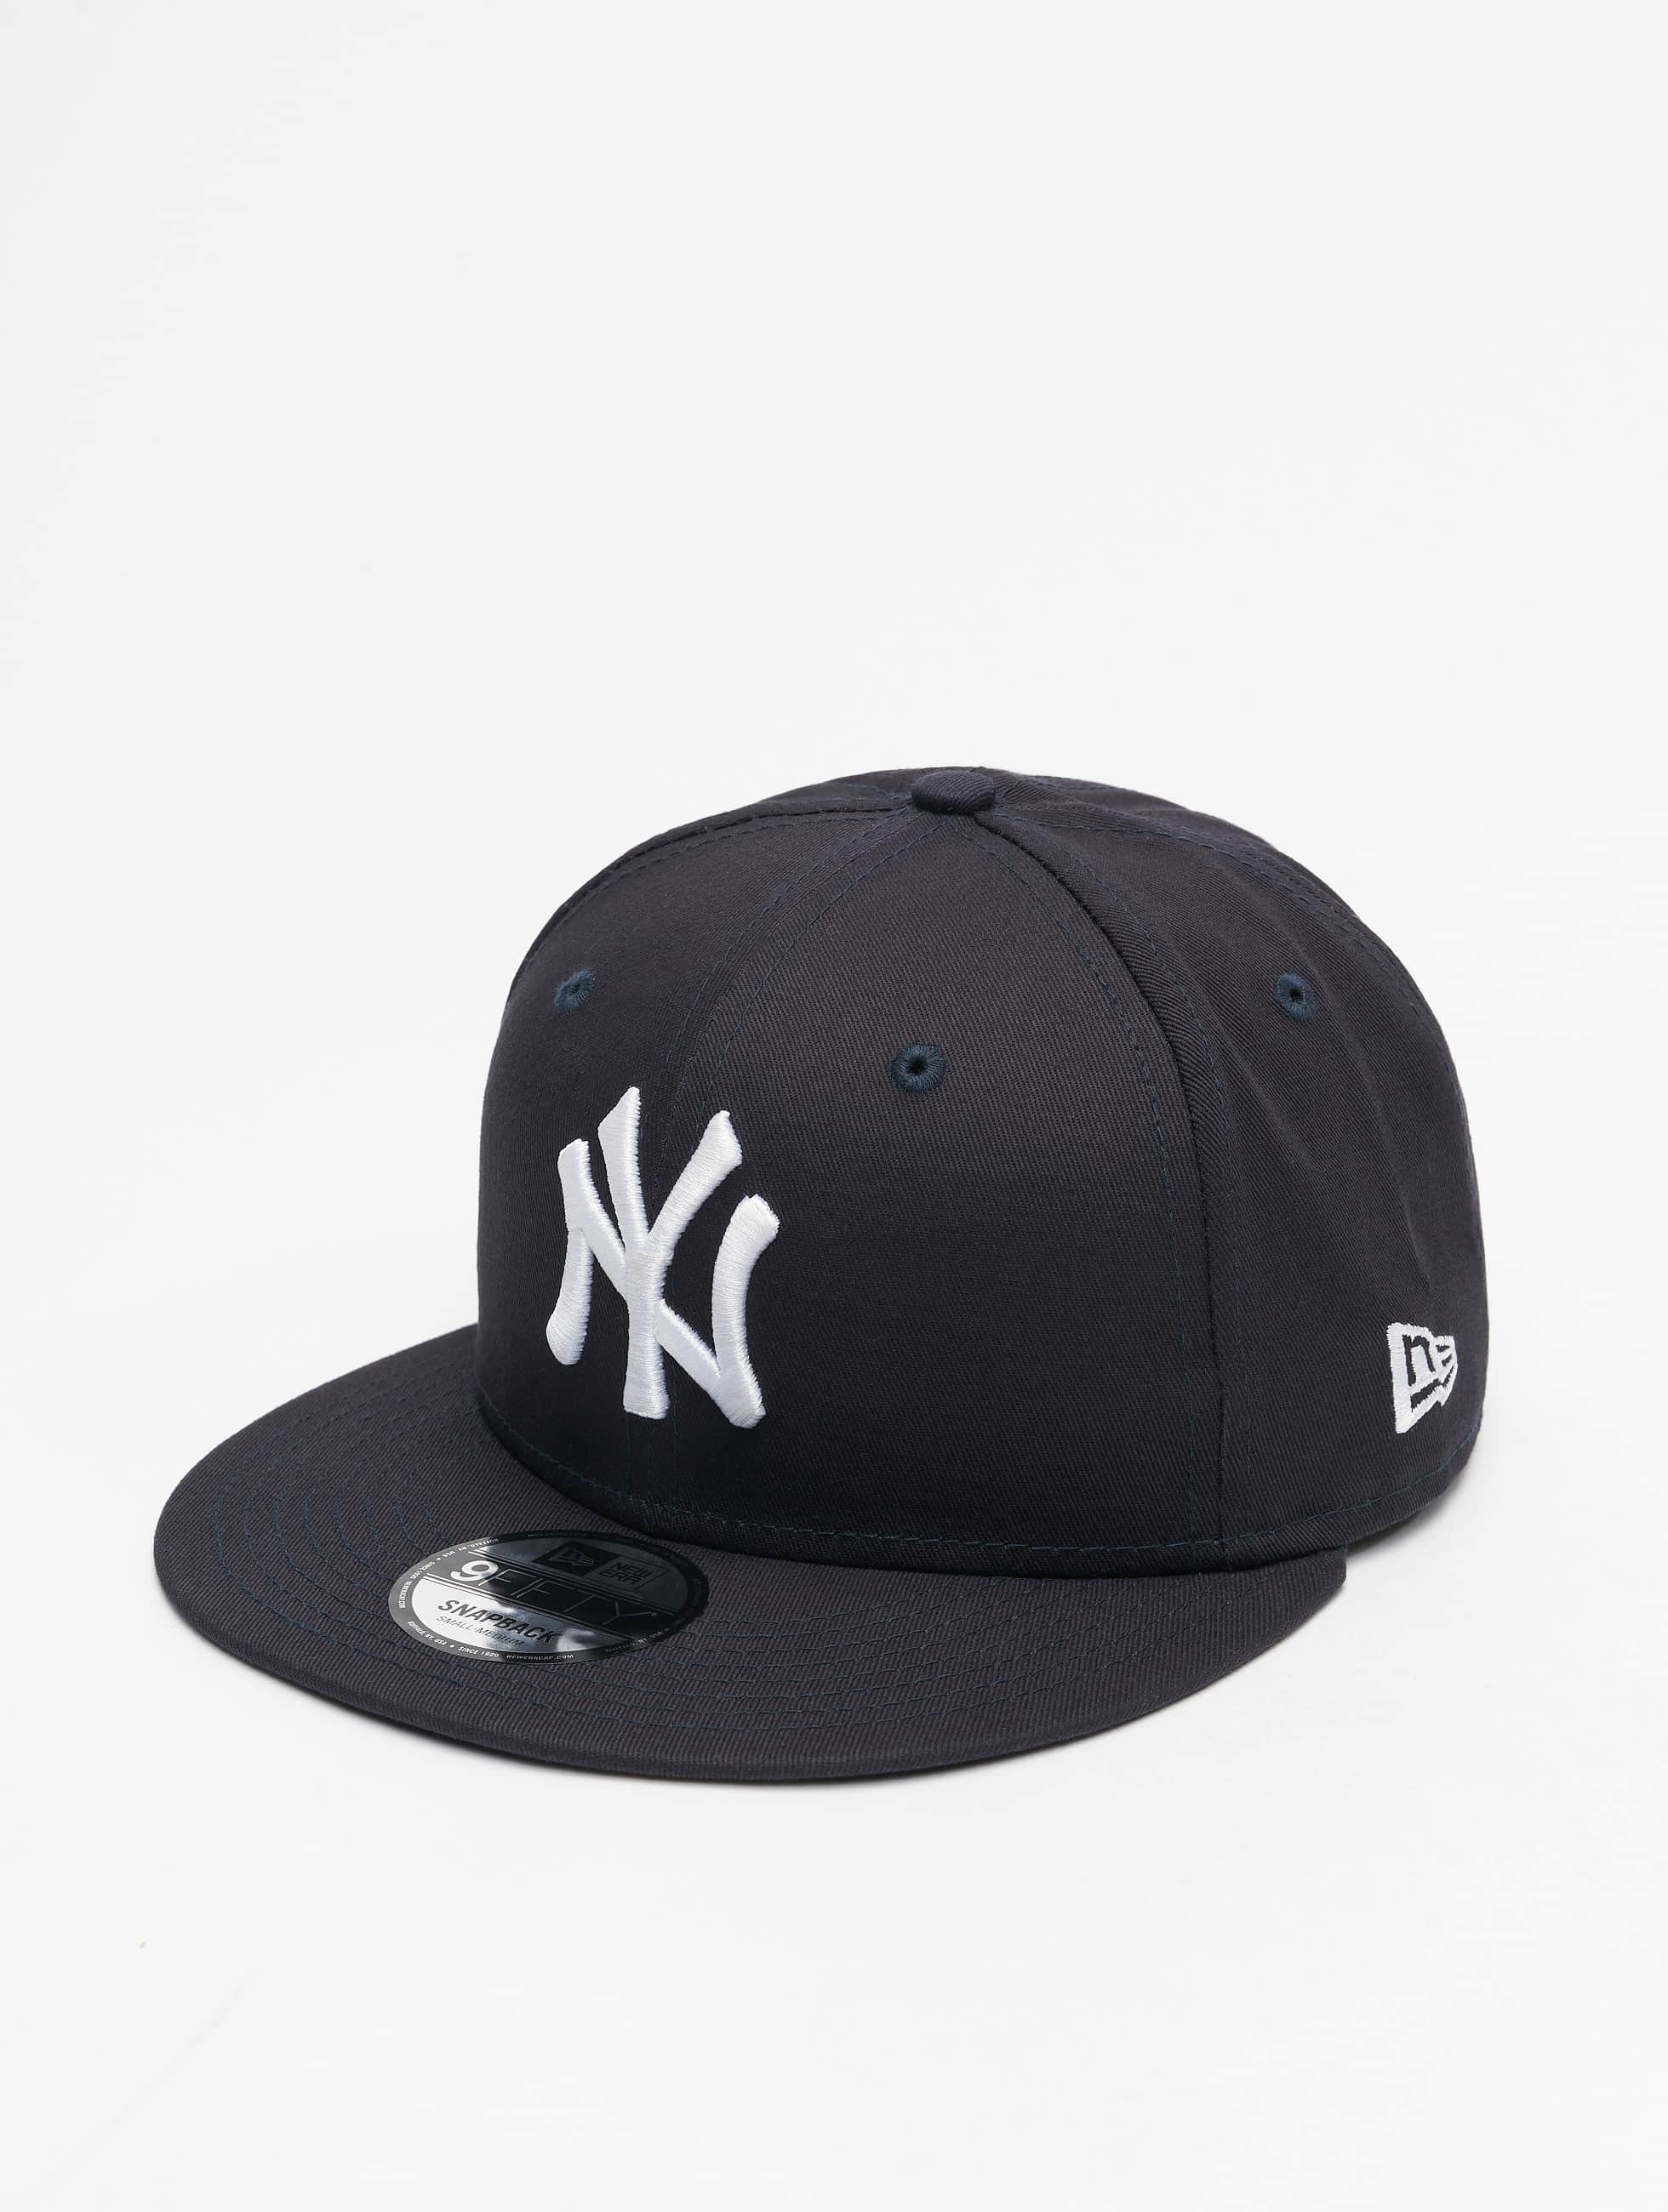 New Era Кепка с застёжкой MLB NY Yankees 9Fifty синий